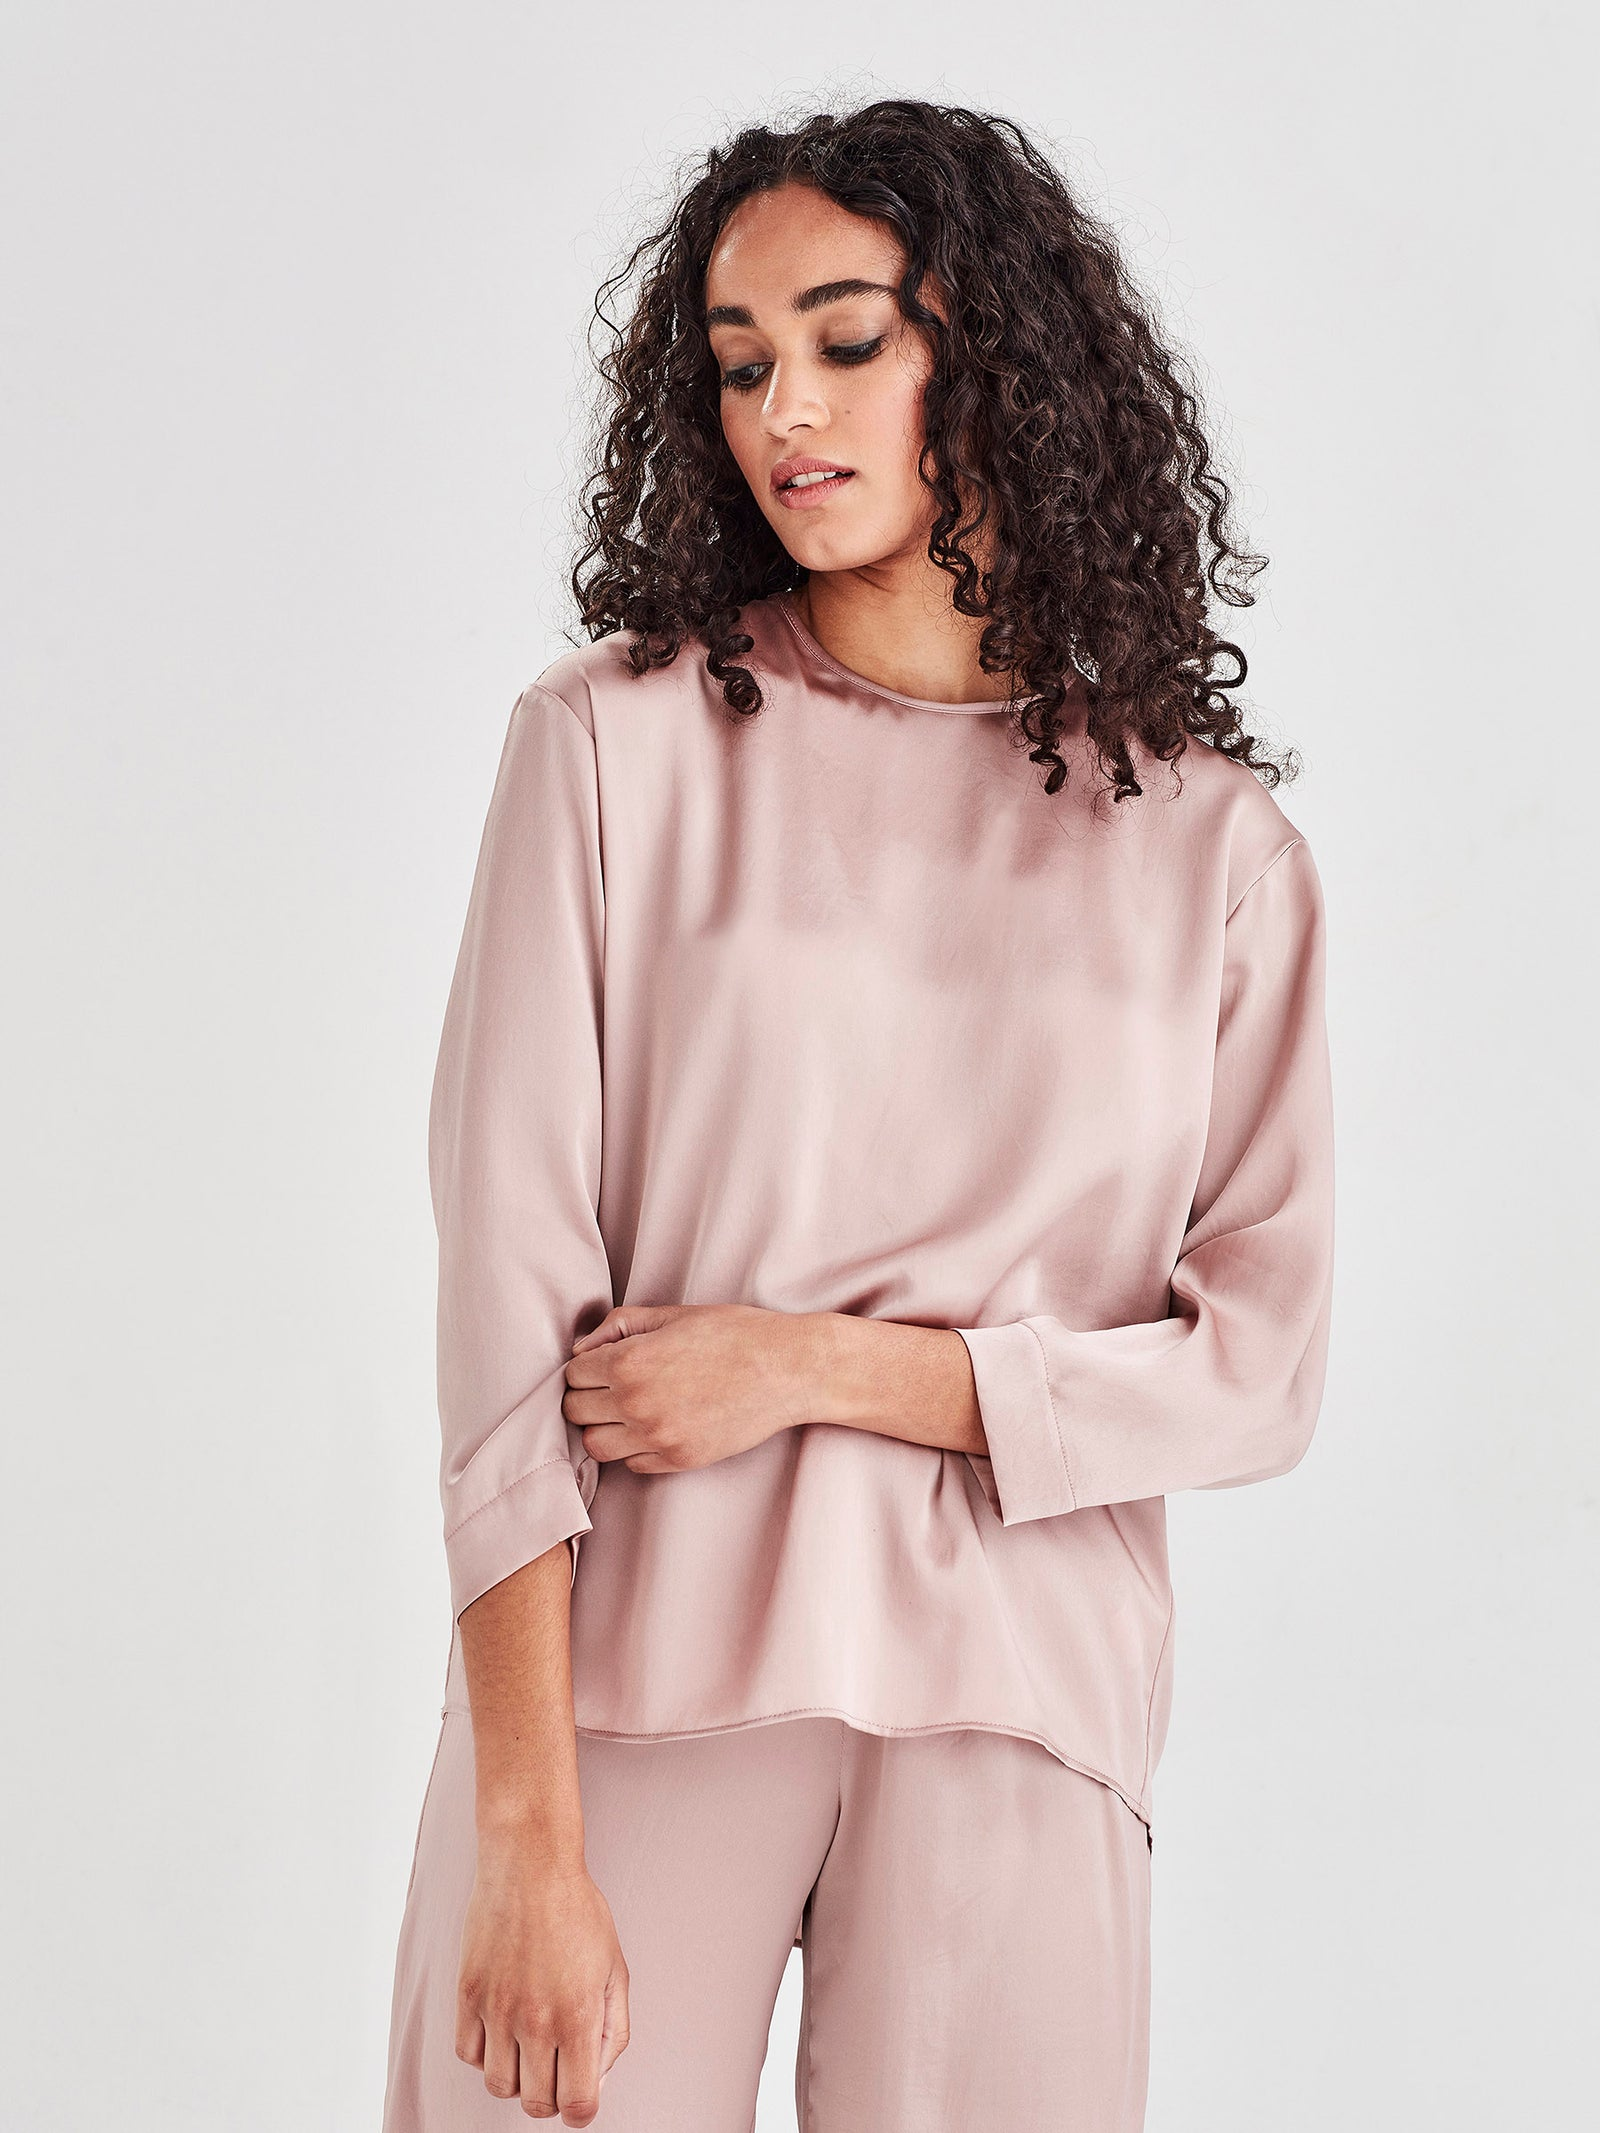 Parlour Blouse (Satin Triacetate) Blush